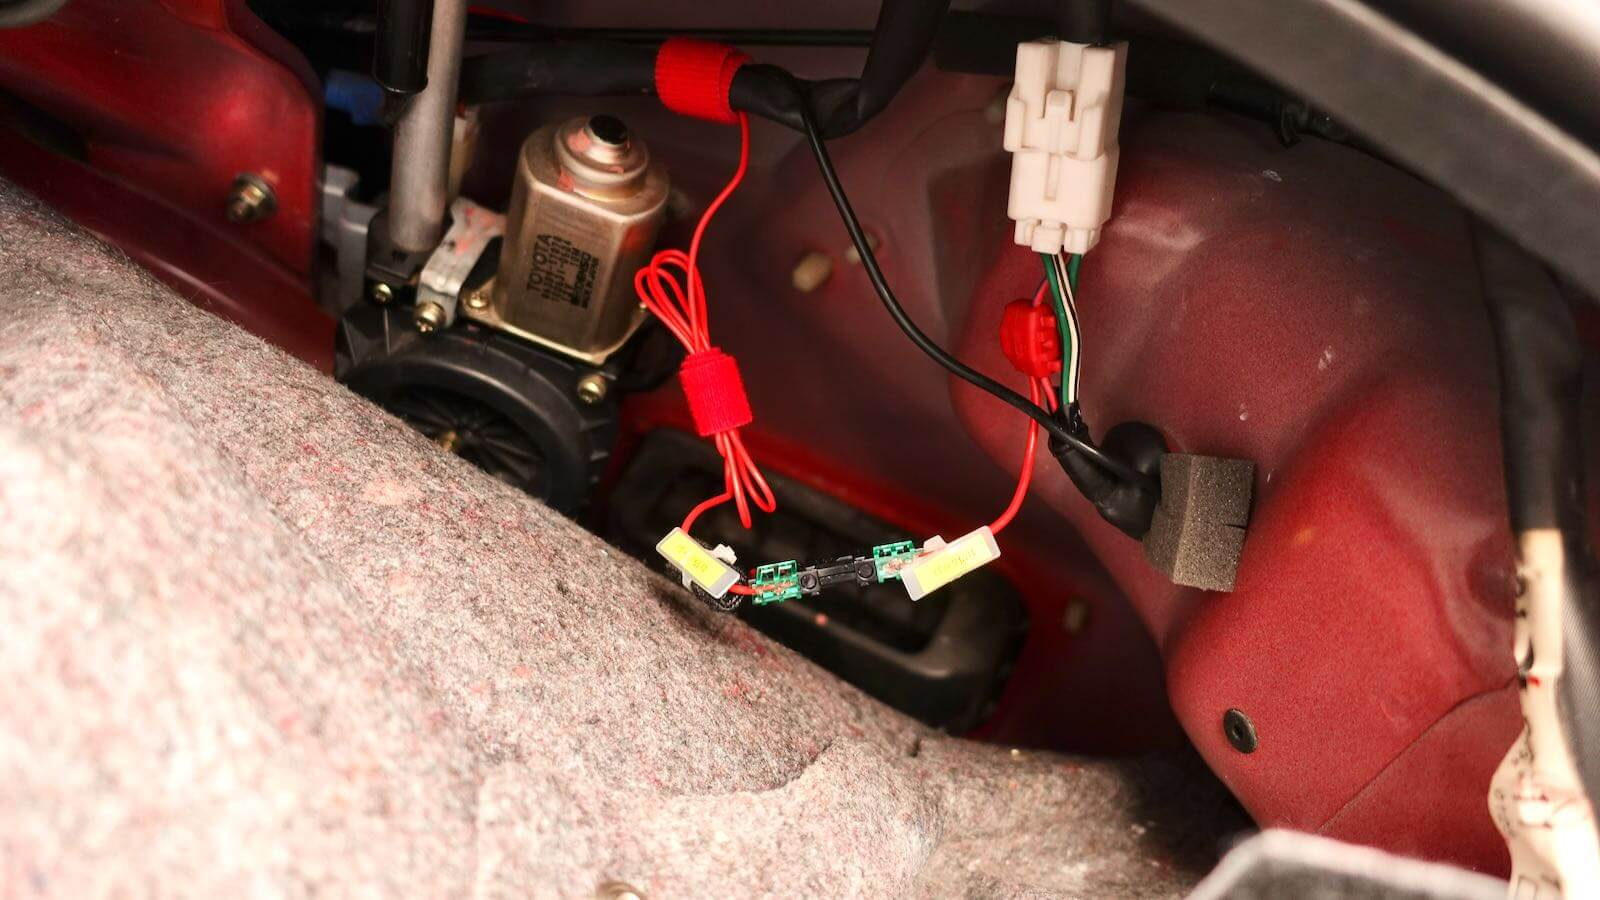 MR2 back lamp cable short circuit